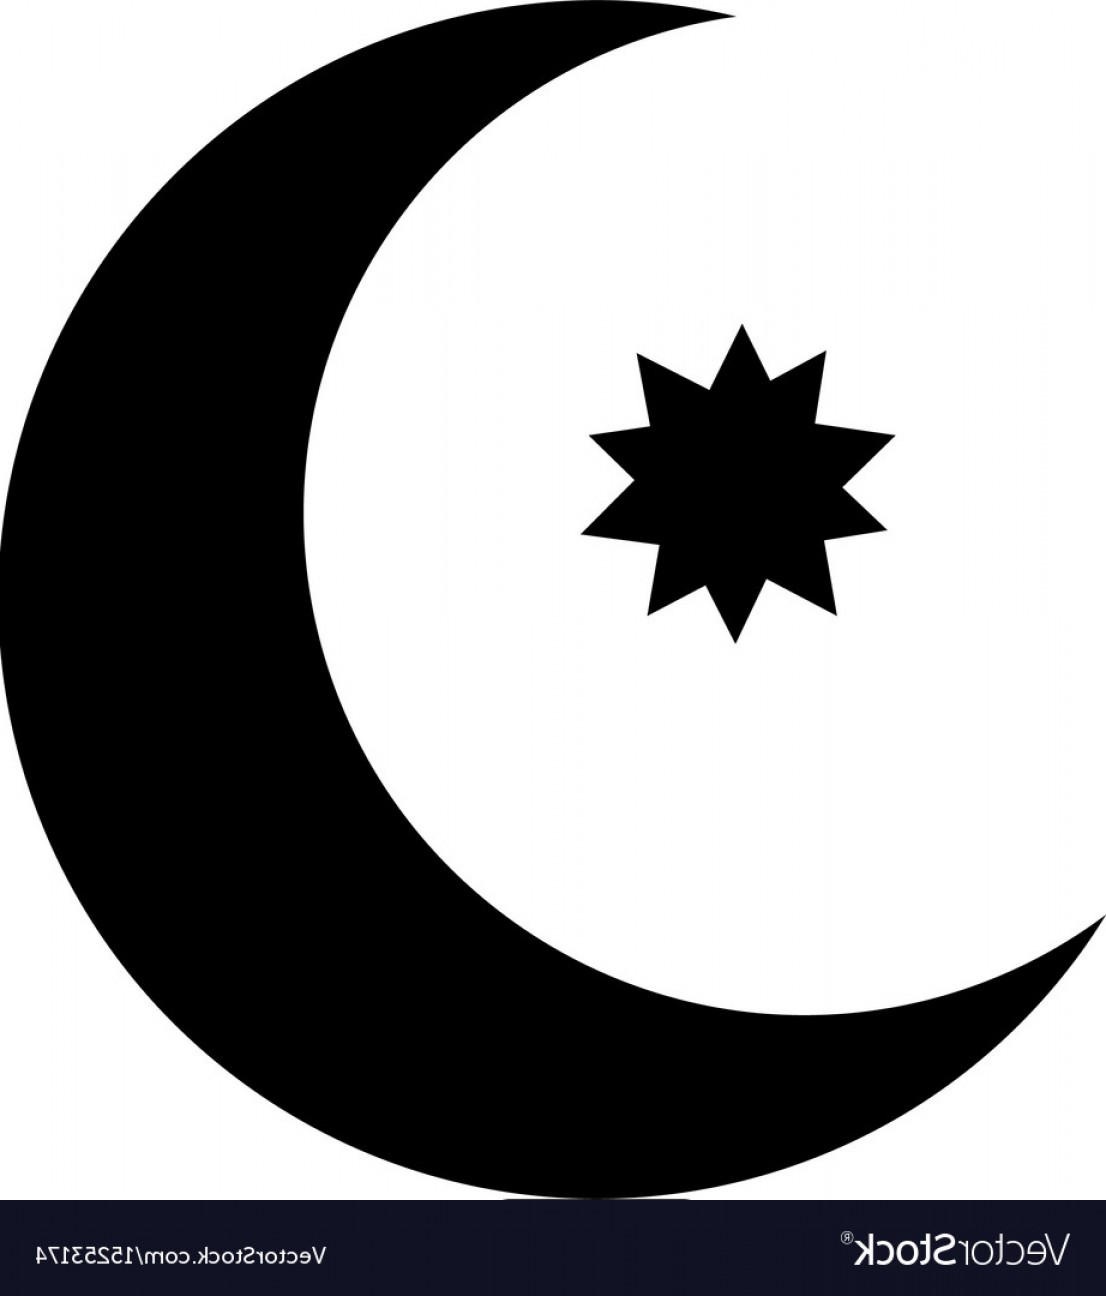 Star And Crescent Moon Vector: Half Moon With Star Con Vector